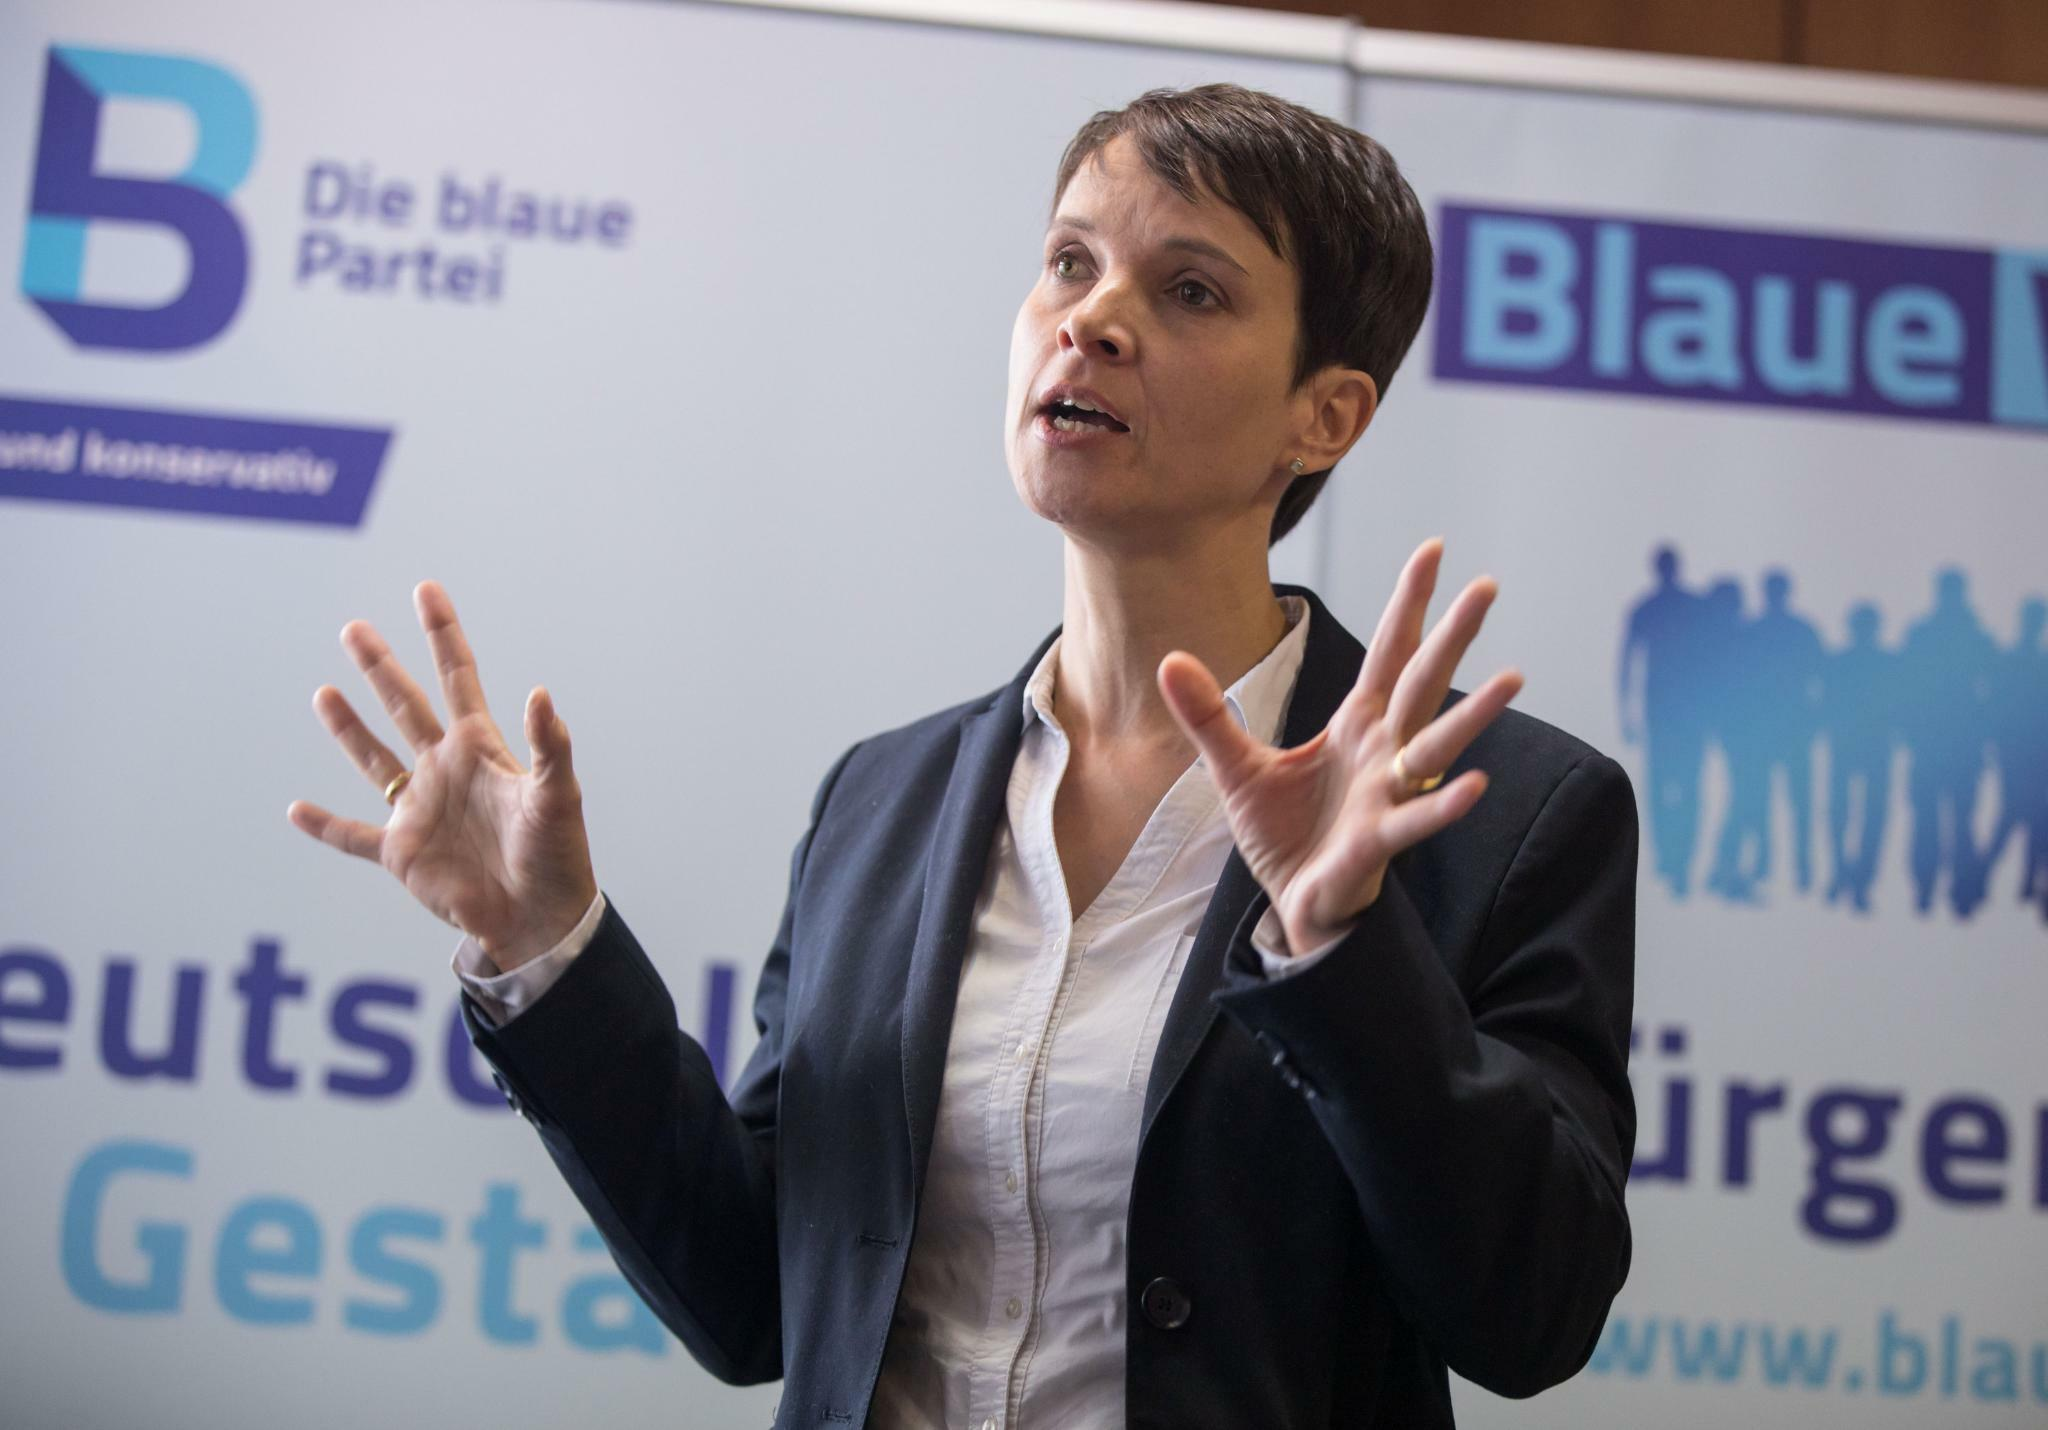 ex chefin der afd stellt plan vor frauke petry startet ihr neues projekt blaue wende. Black Bedroom Furniture Sets. Home Design Ideas